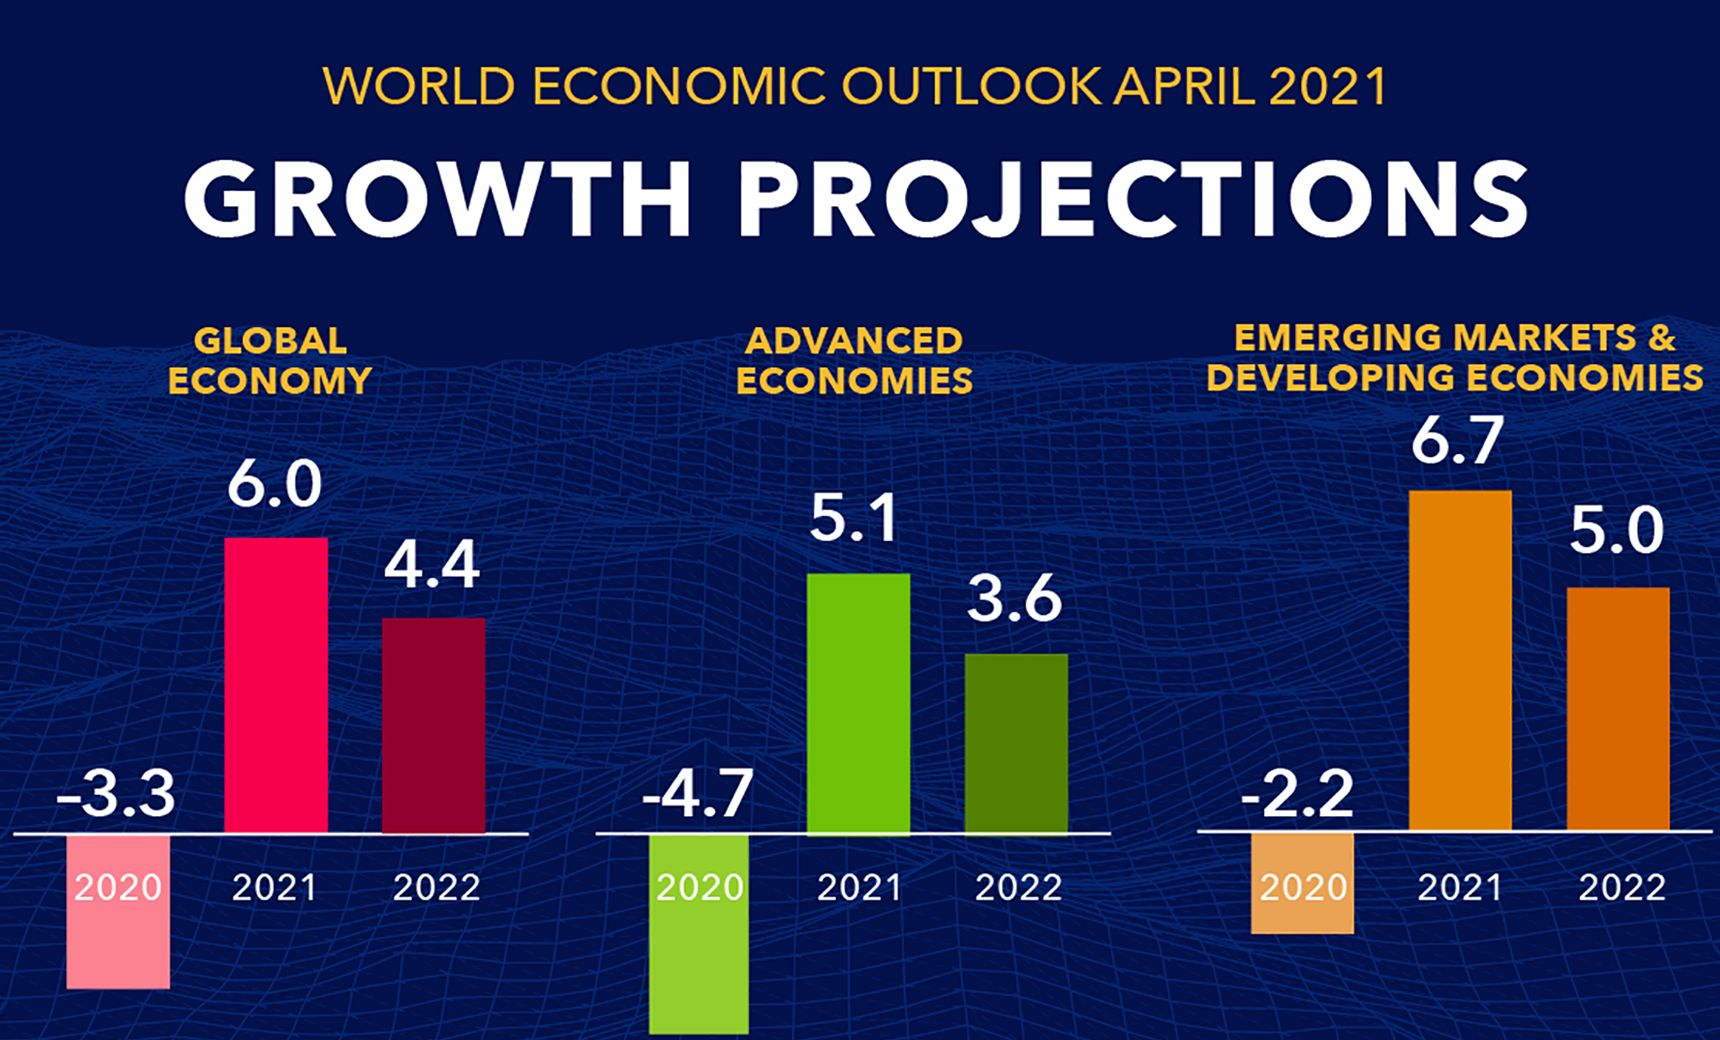 After an estimated contraction of –3.3 percent in 2020, the global economy is projected to grow at 6 percent in 2021